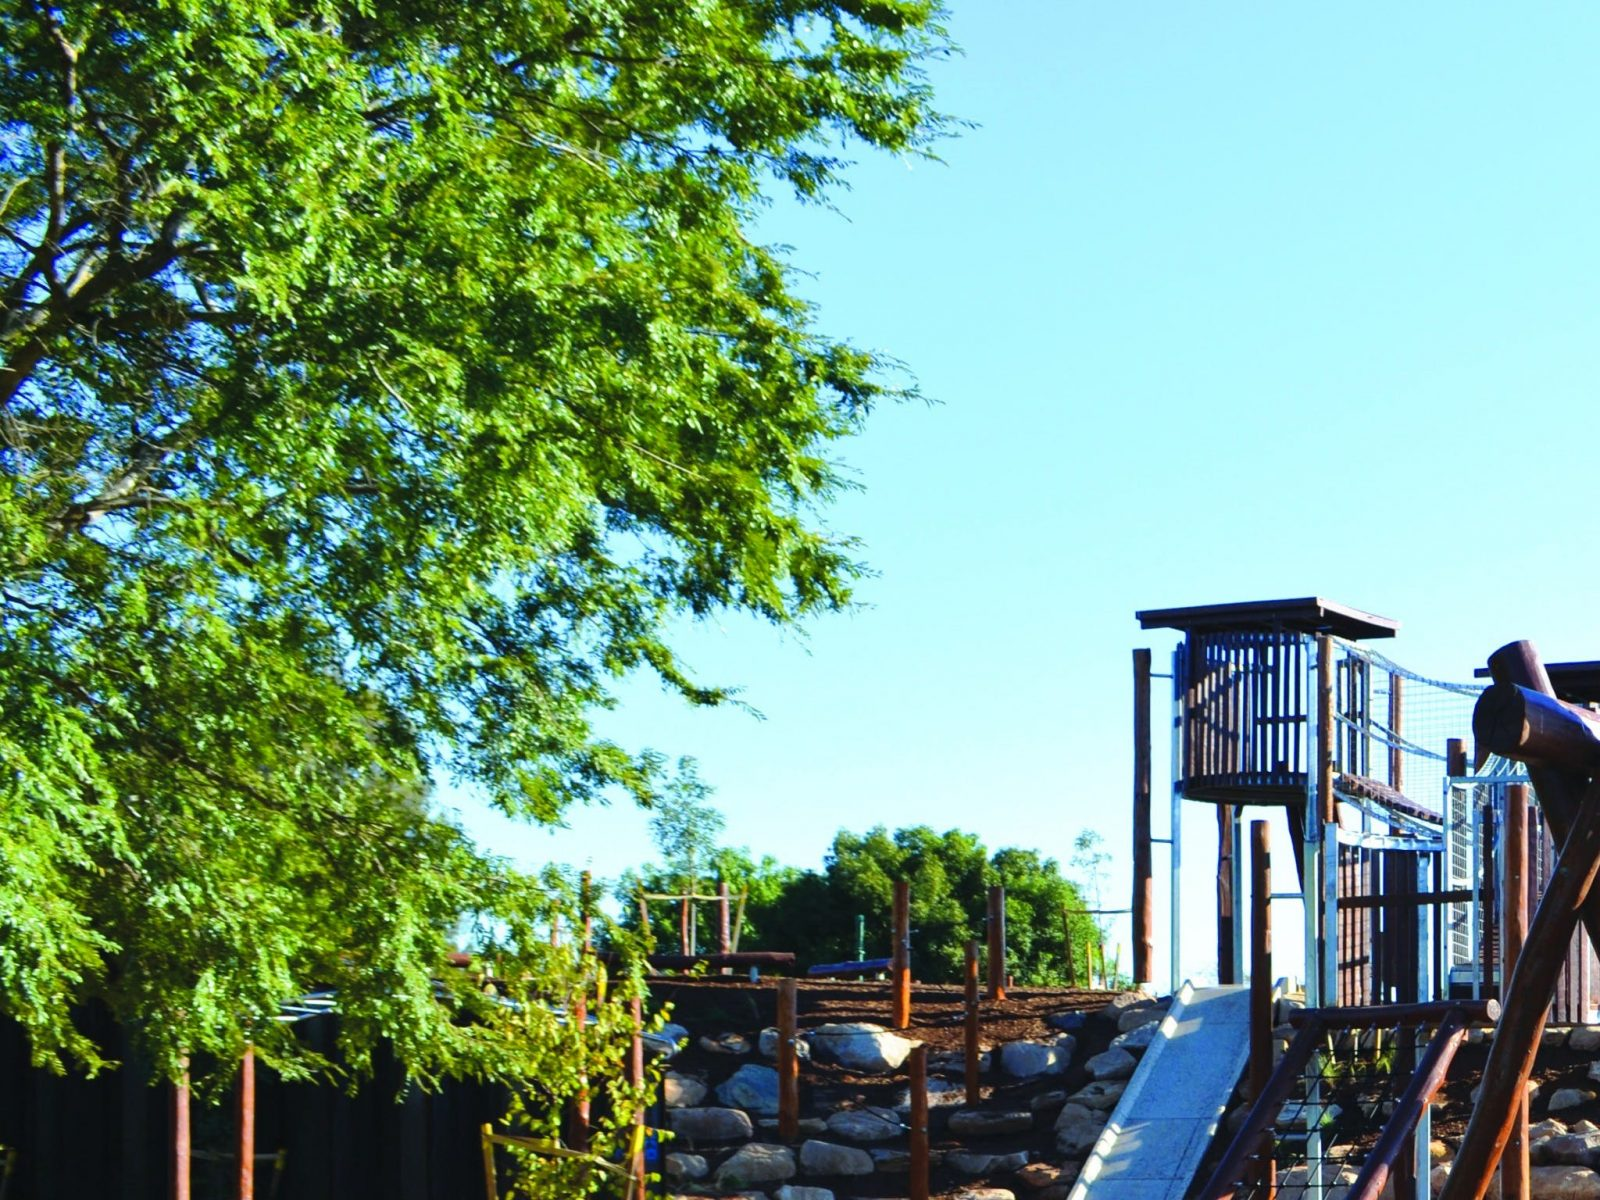 Dubbo Regional Adventure Playground